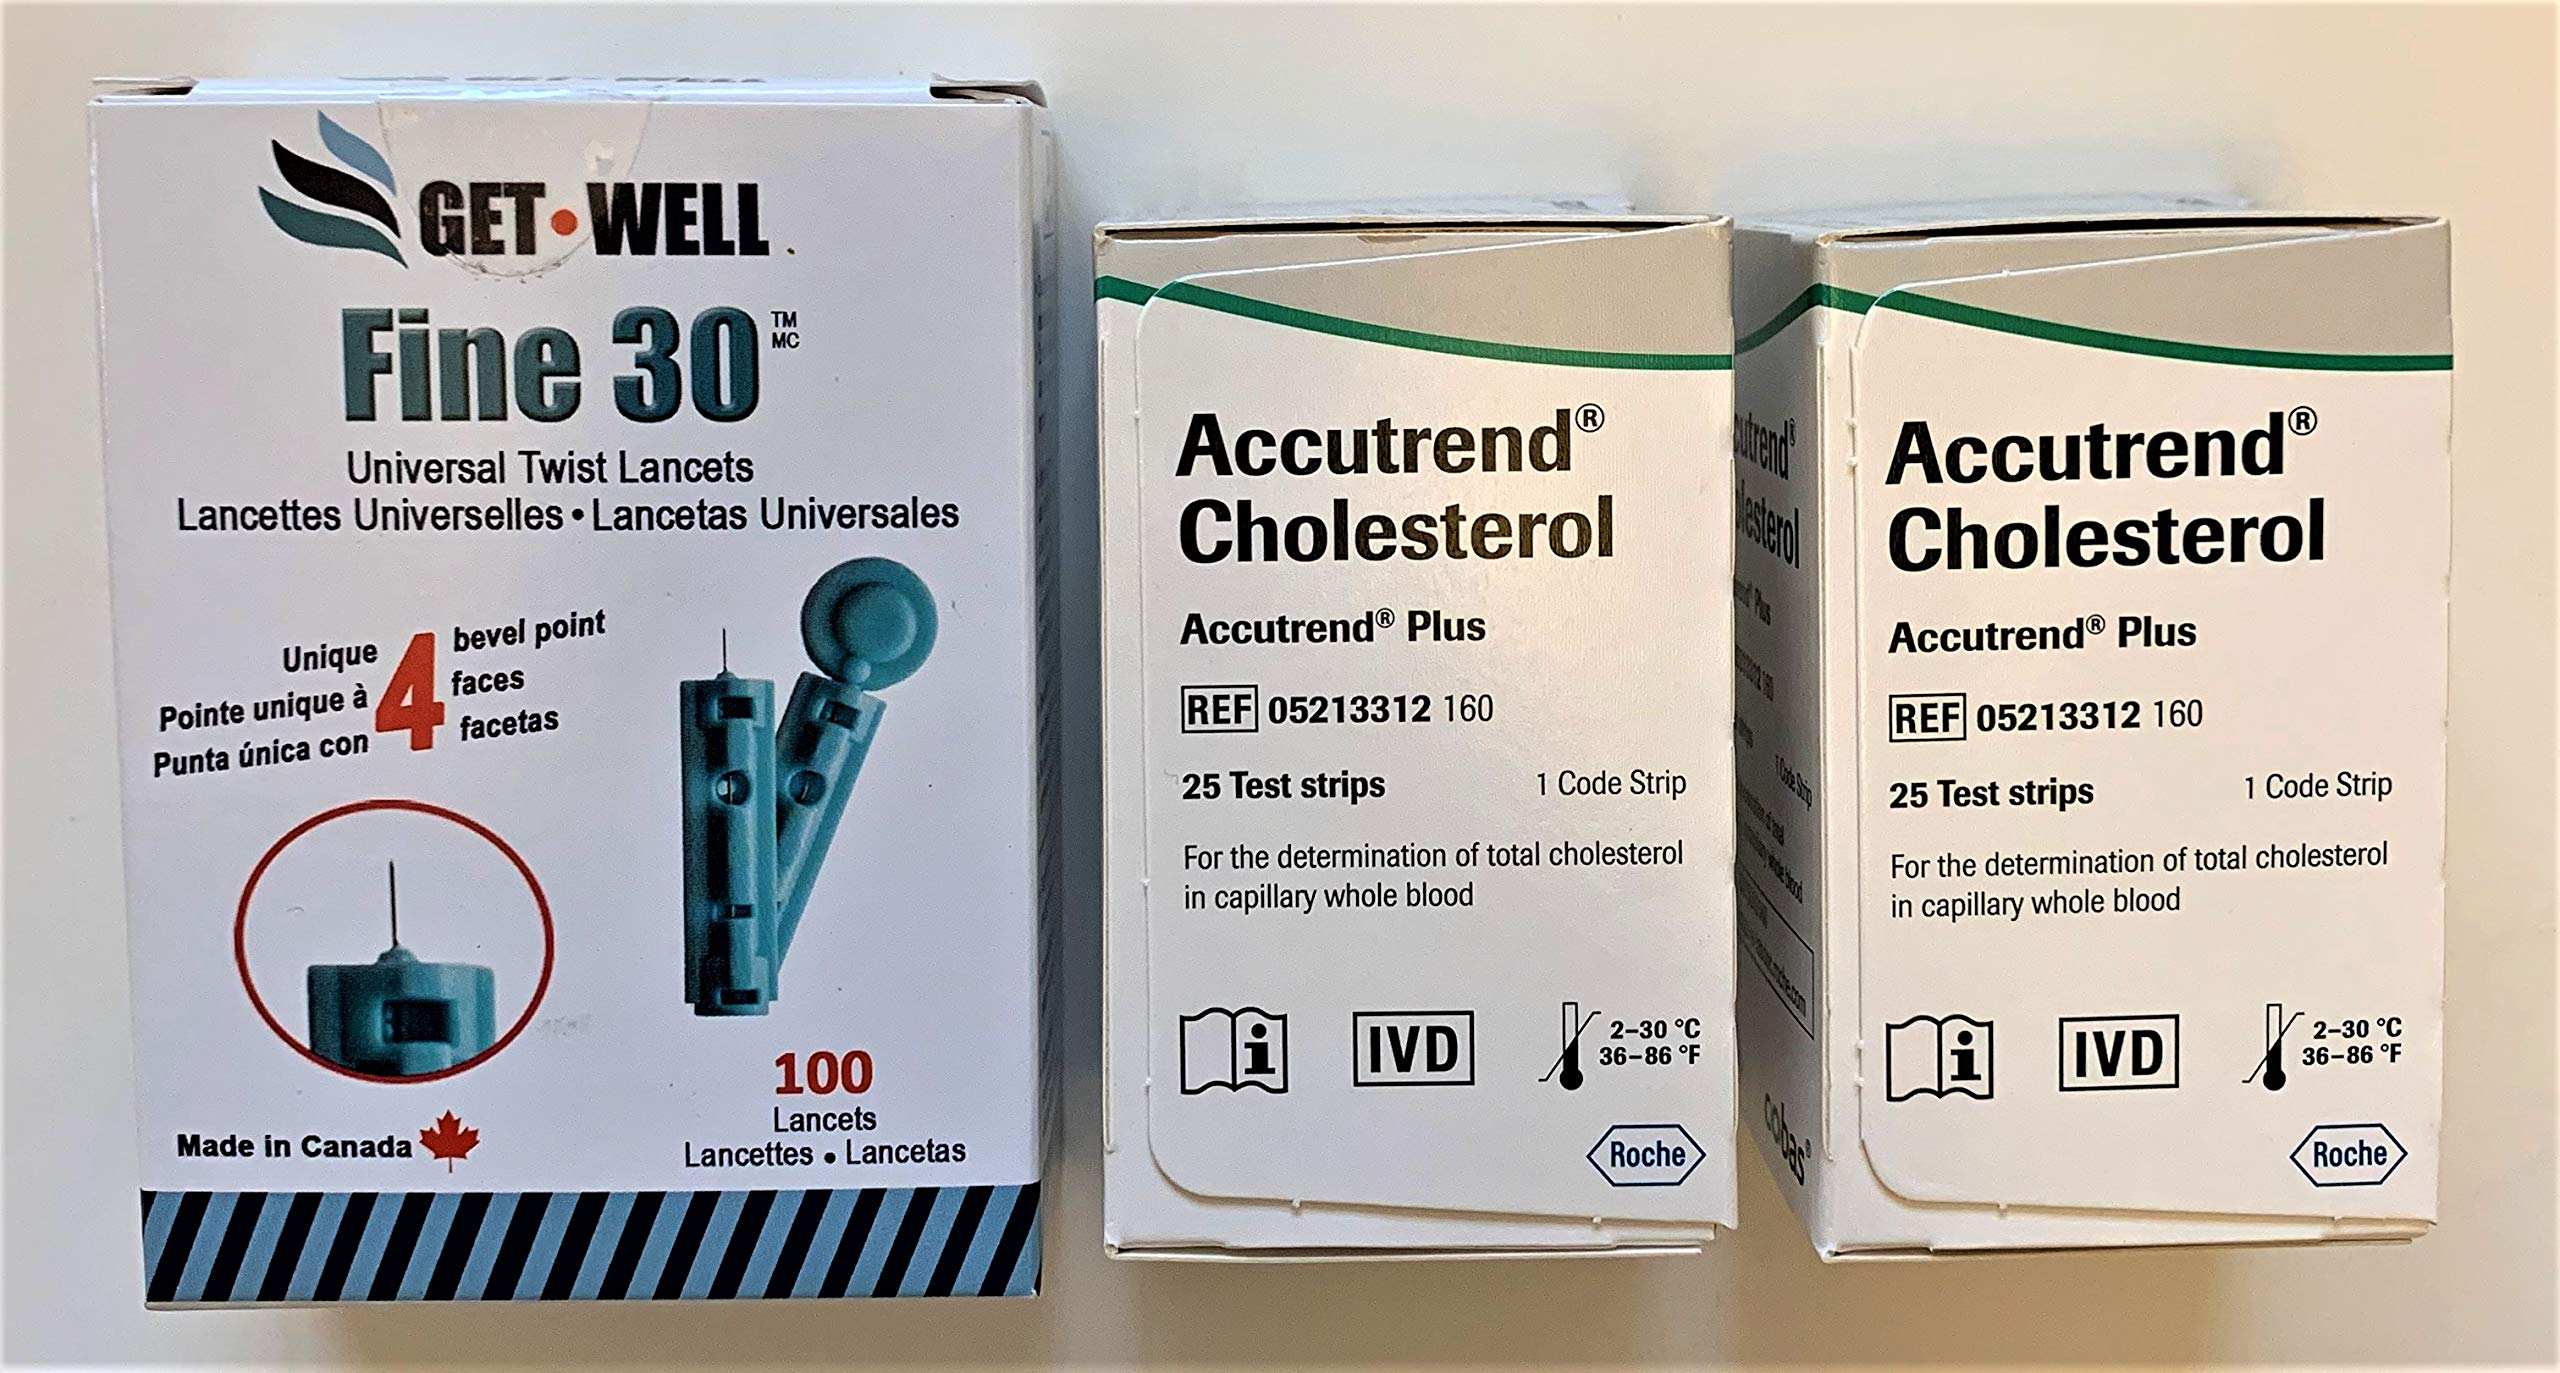 GET•WELL Fine 30g Universal Twist Lancets 100 Ct. - Made in Canada ! Unique Quad Bevel Tip Offers Quick Healing & Less Pain ! 50 Ct. Accutrend Plus Cholesterol Test Strips